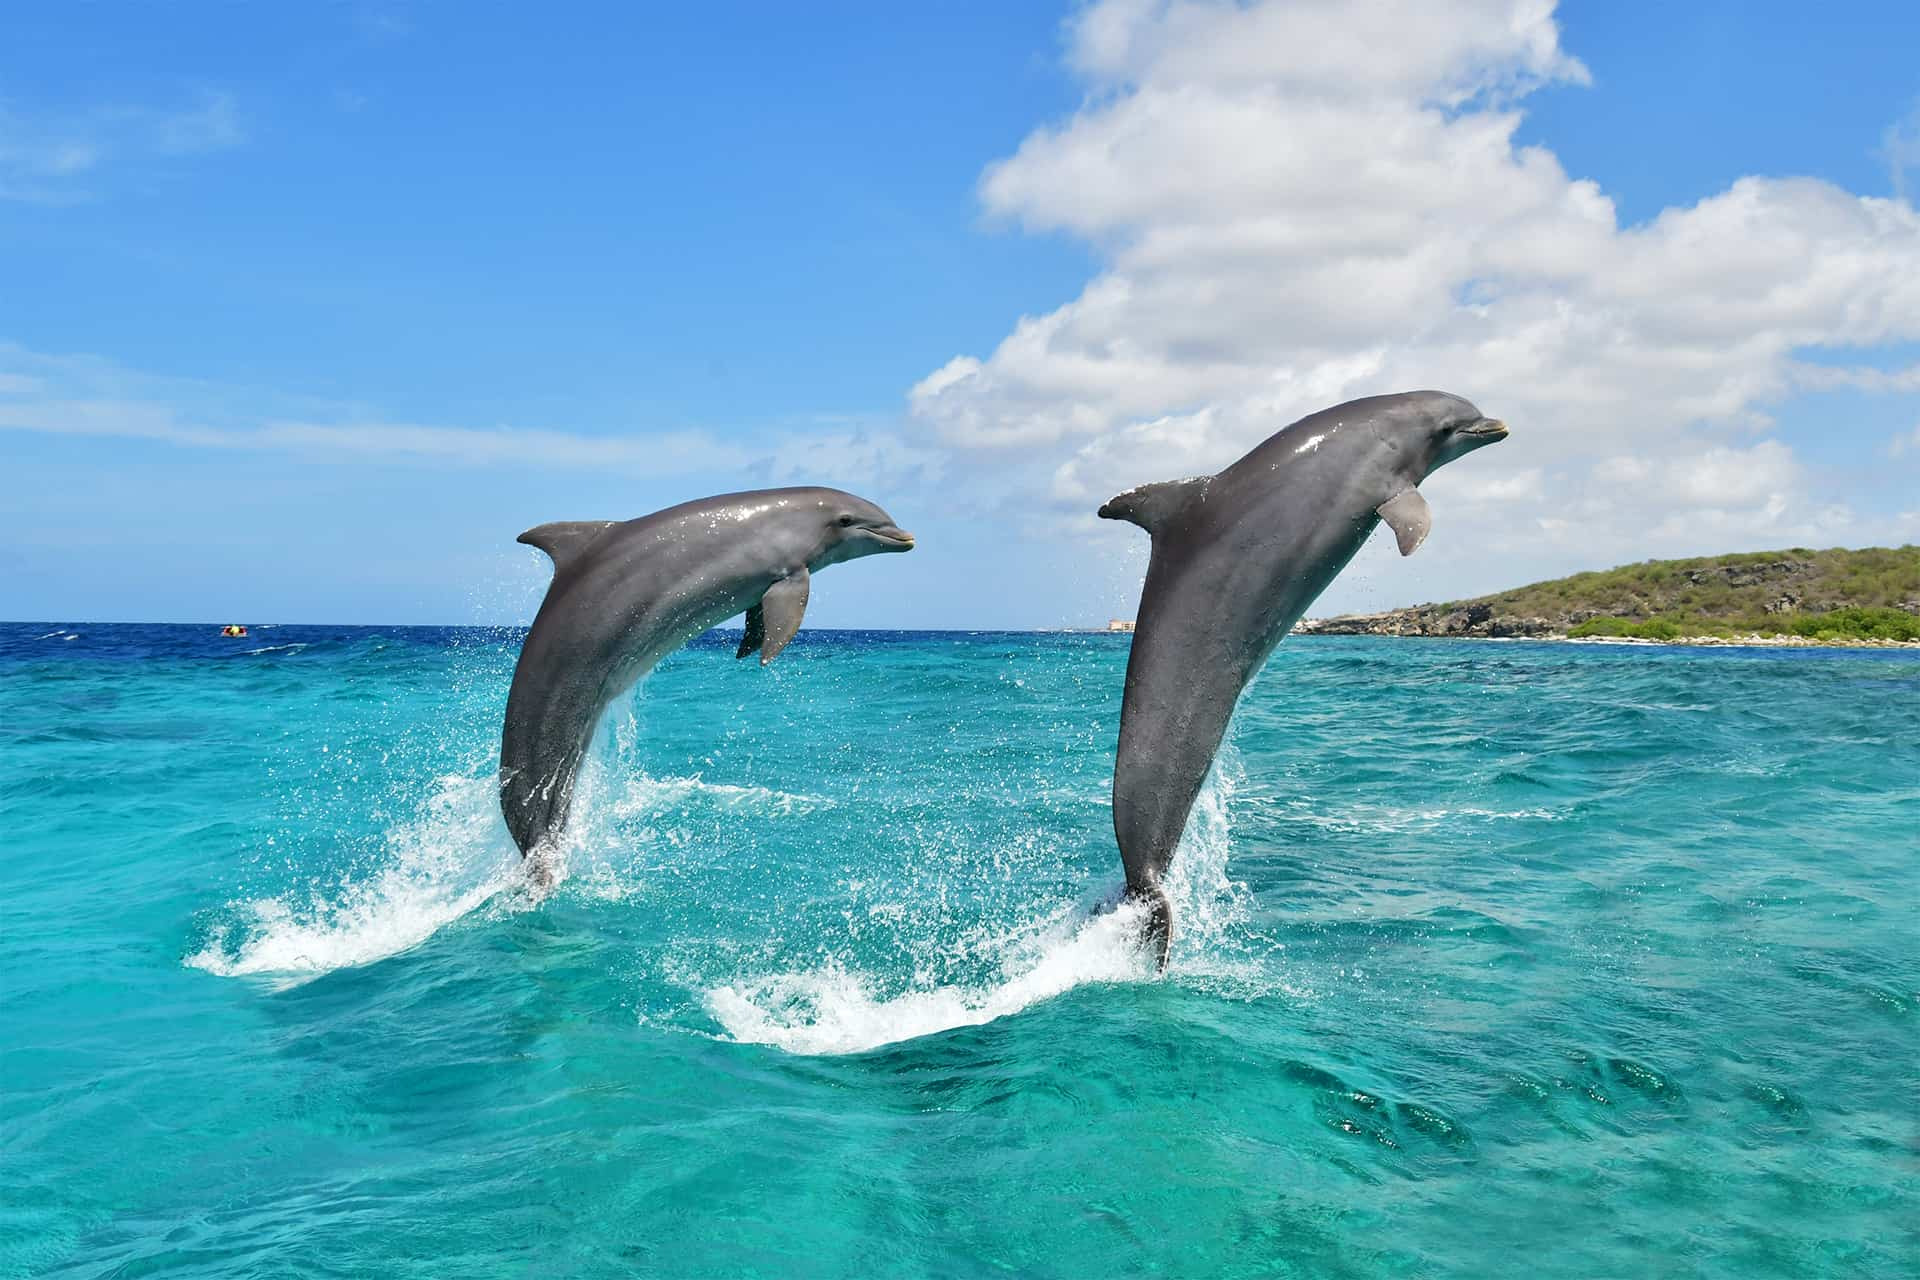 Two dolphins jumping out of the sea at the dolphin academy in Curaçao.